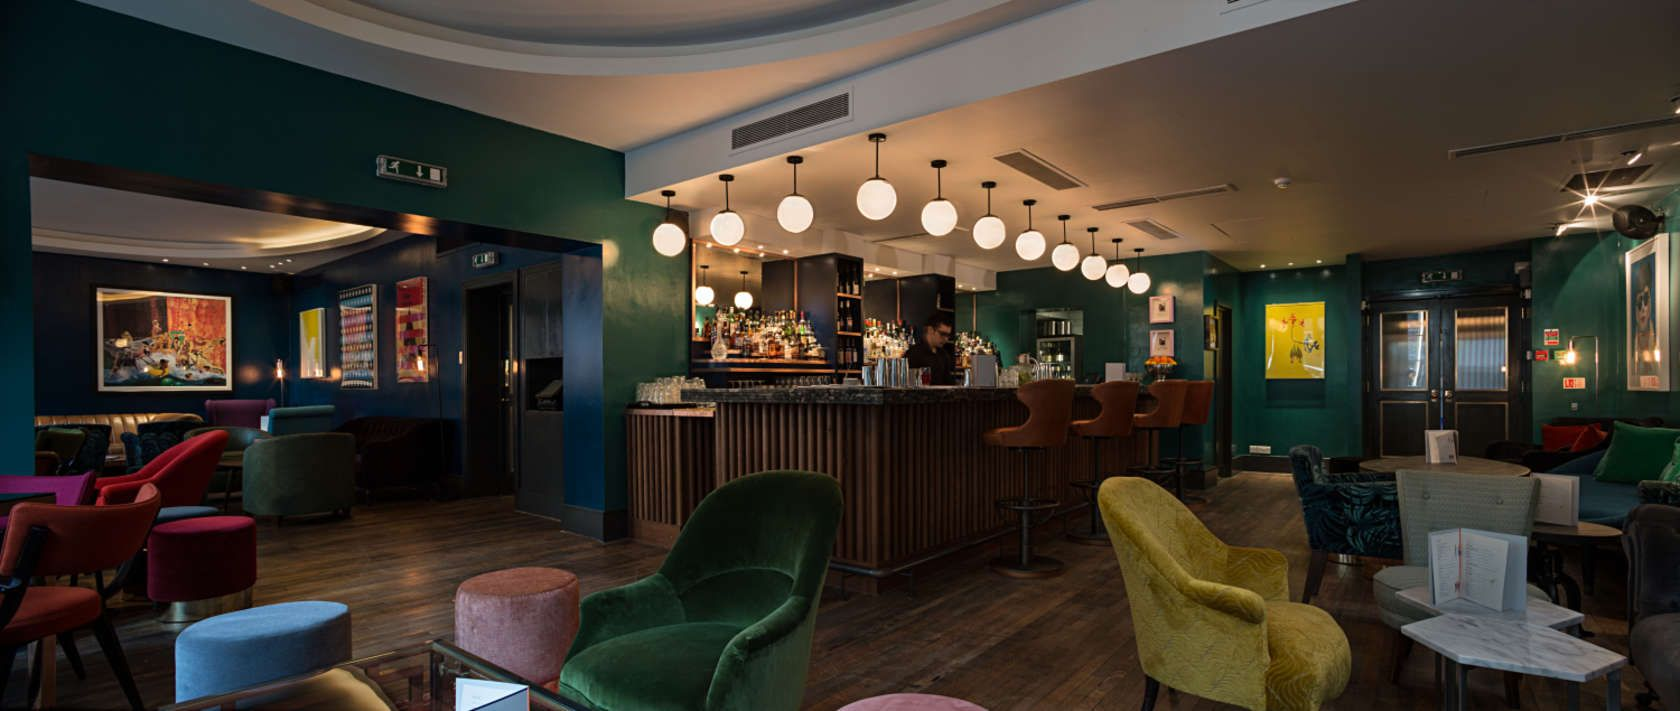 'MB were invited to design a cohesive and broad reworking of the entire layout of the iconic Groucho Club, which had grown organically over the years in a ve...